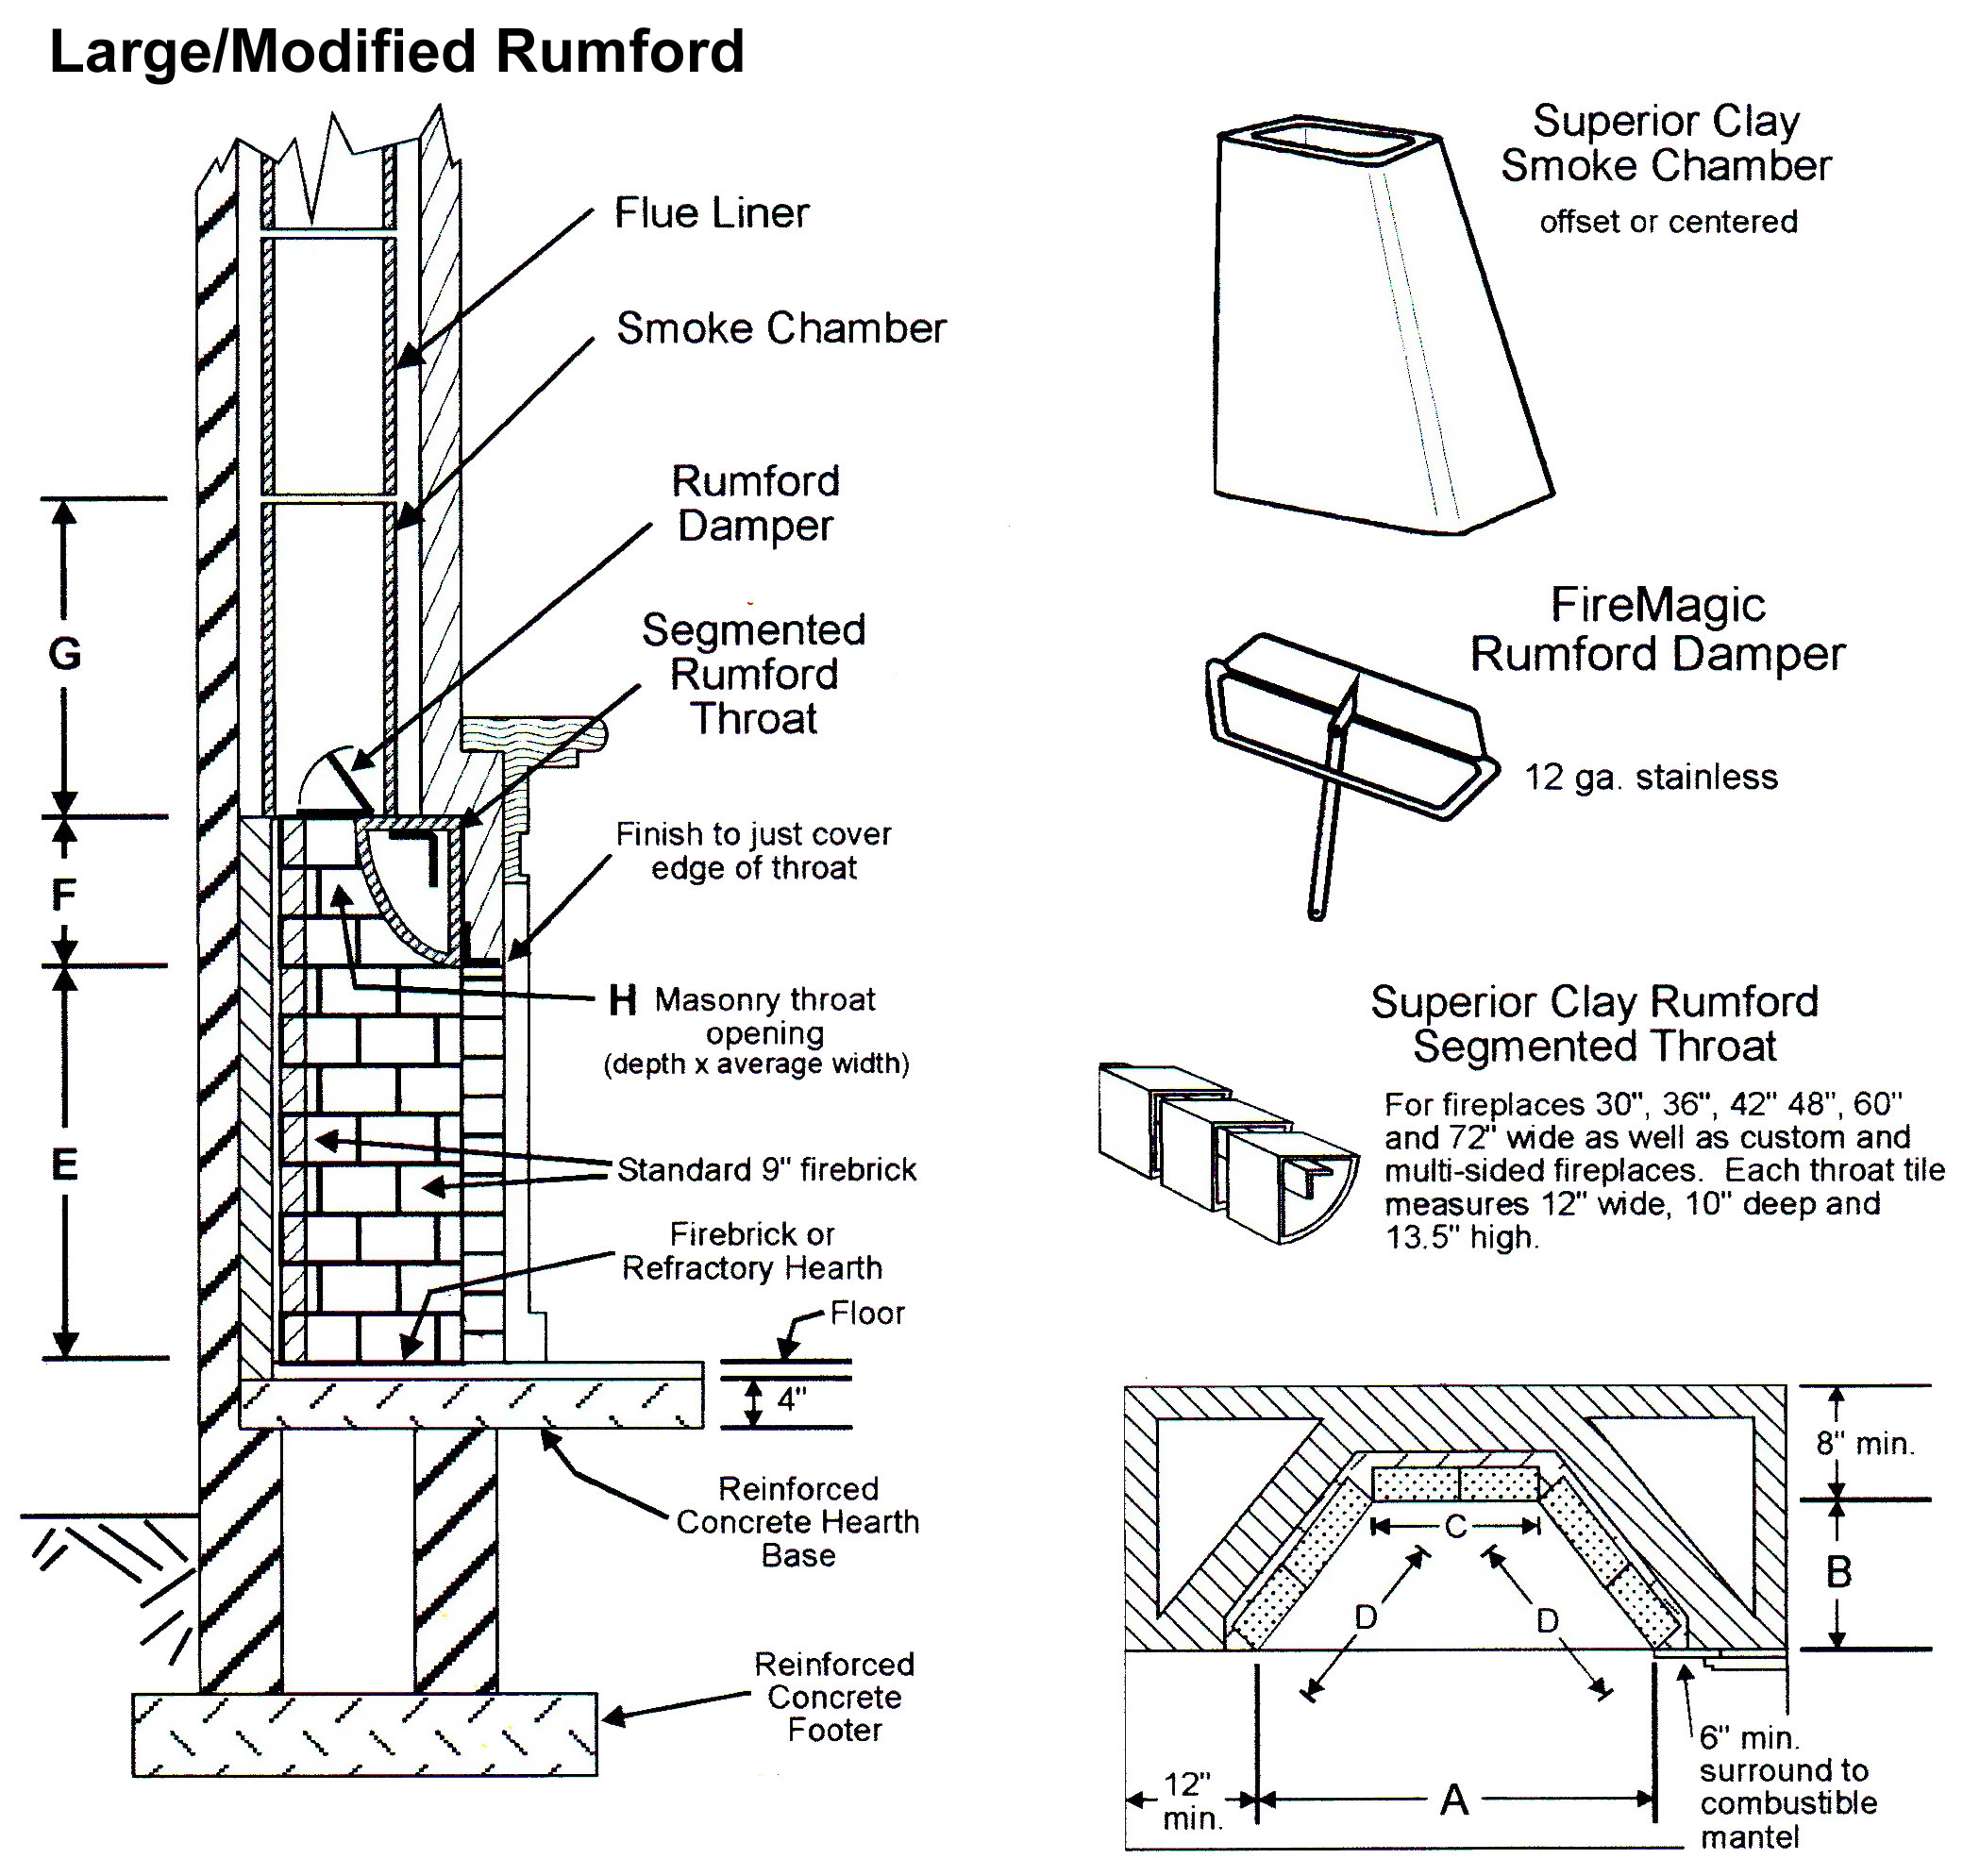 Decorating: Rumford Fireplace Plans And Instructions Superior Clay